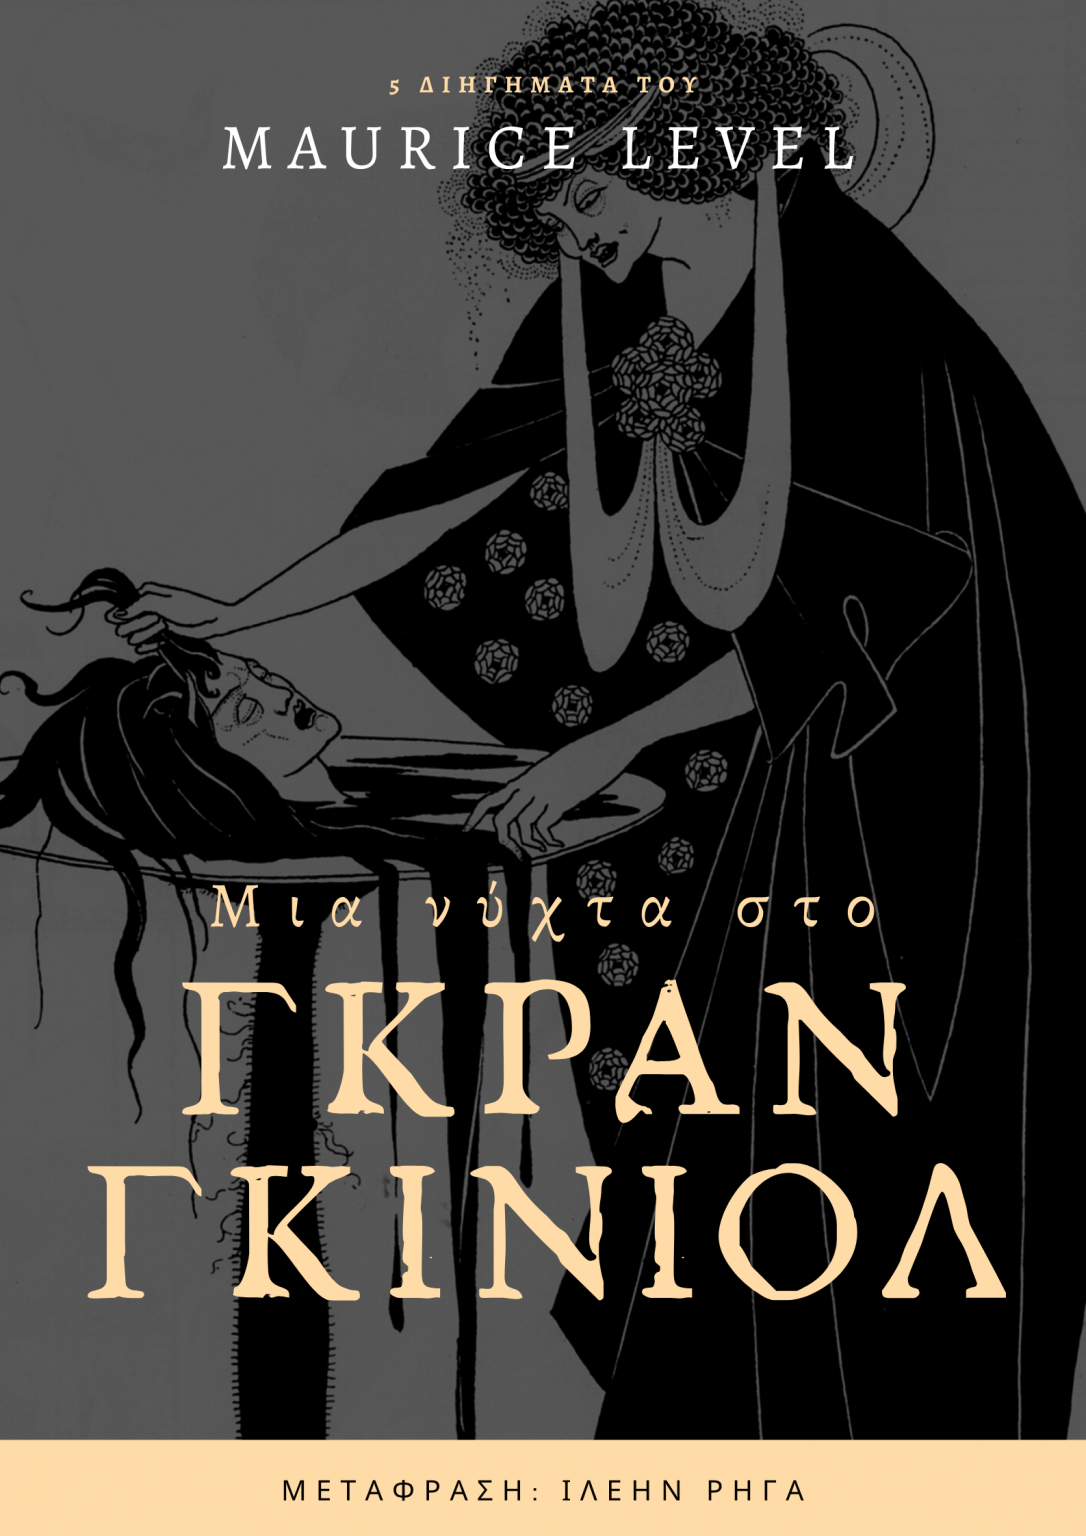 Book Cover: Μια νύχτα στο Γκραν Γκινιόλ